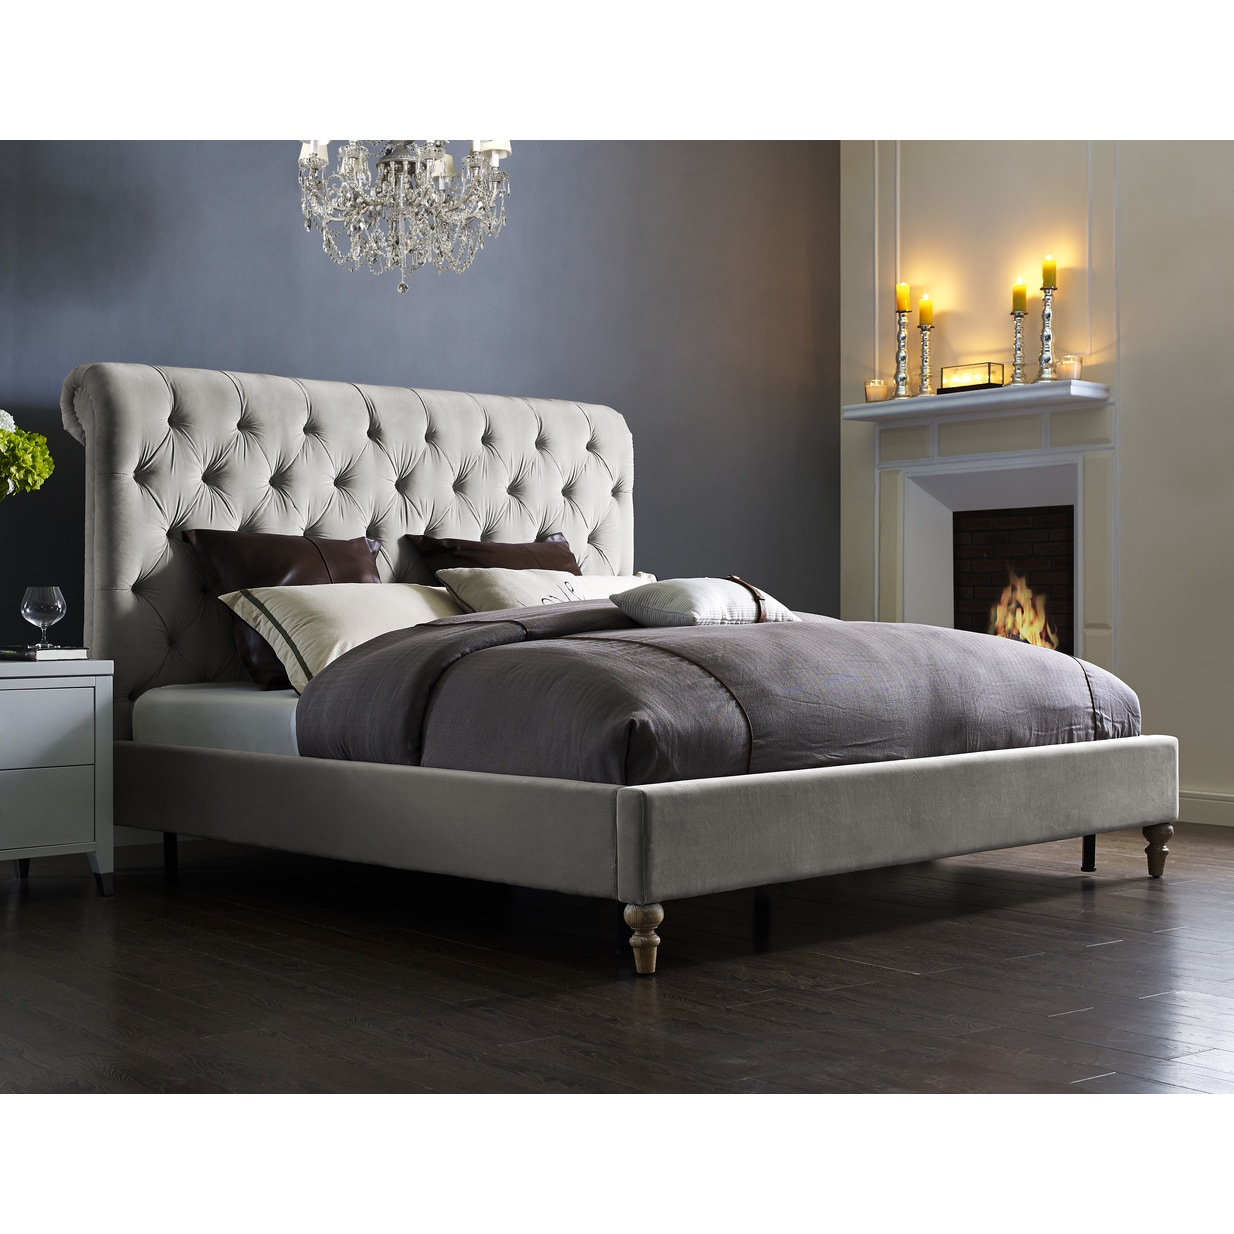 Superieur Shop Putnam Grey Velvet Bed Frame And Headboard   Free Shipping Today    Overstock.com   11534649